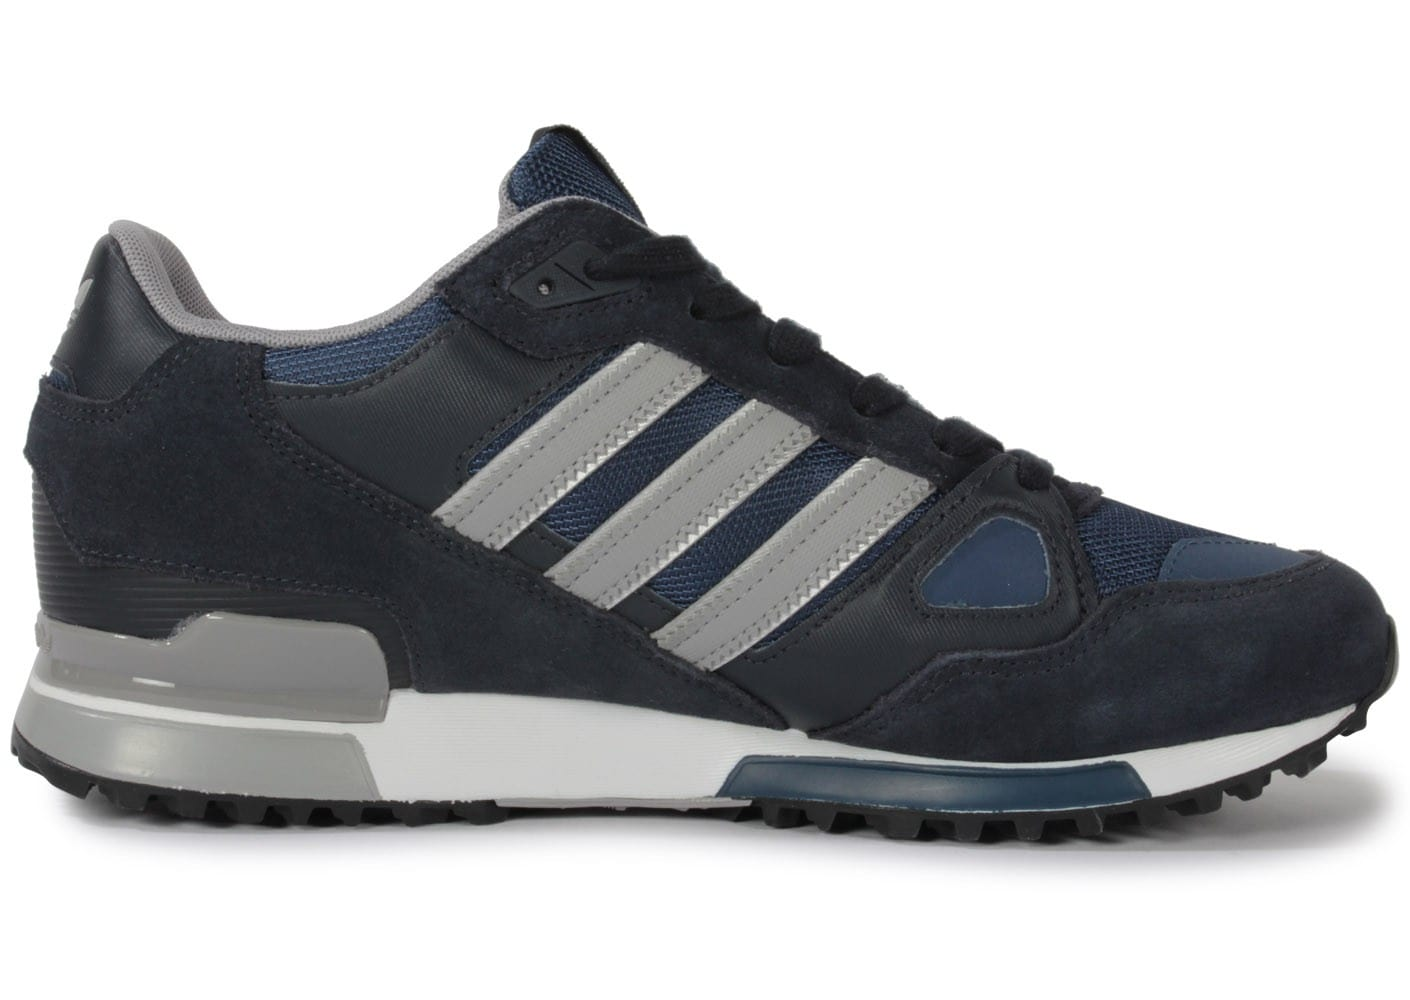 Adidas neo zx 750 for Interieur zx